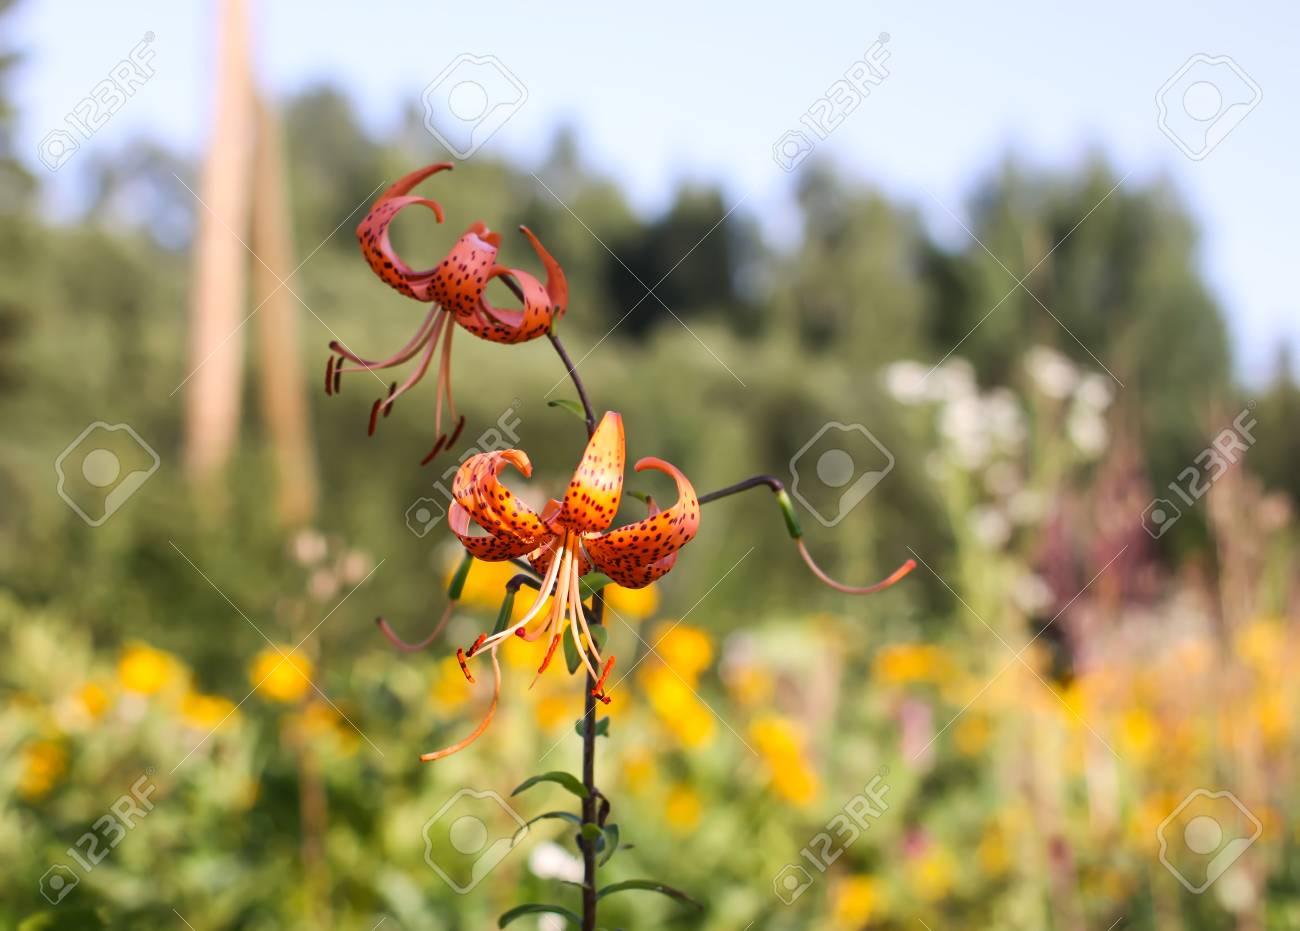 Orange Lily Flowers Blooming In Summer Park Stock Photo Picture